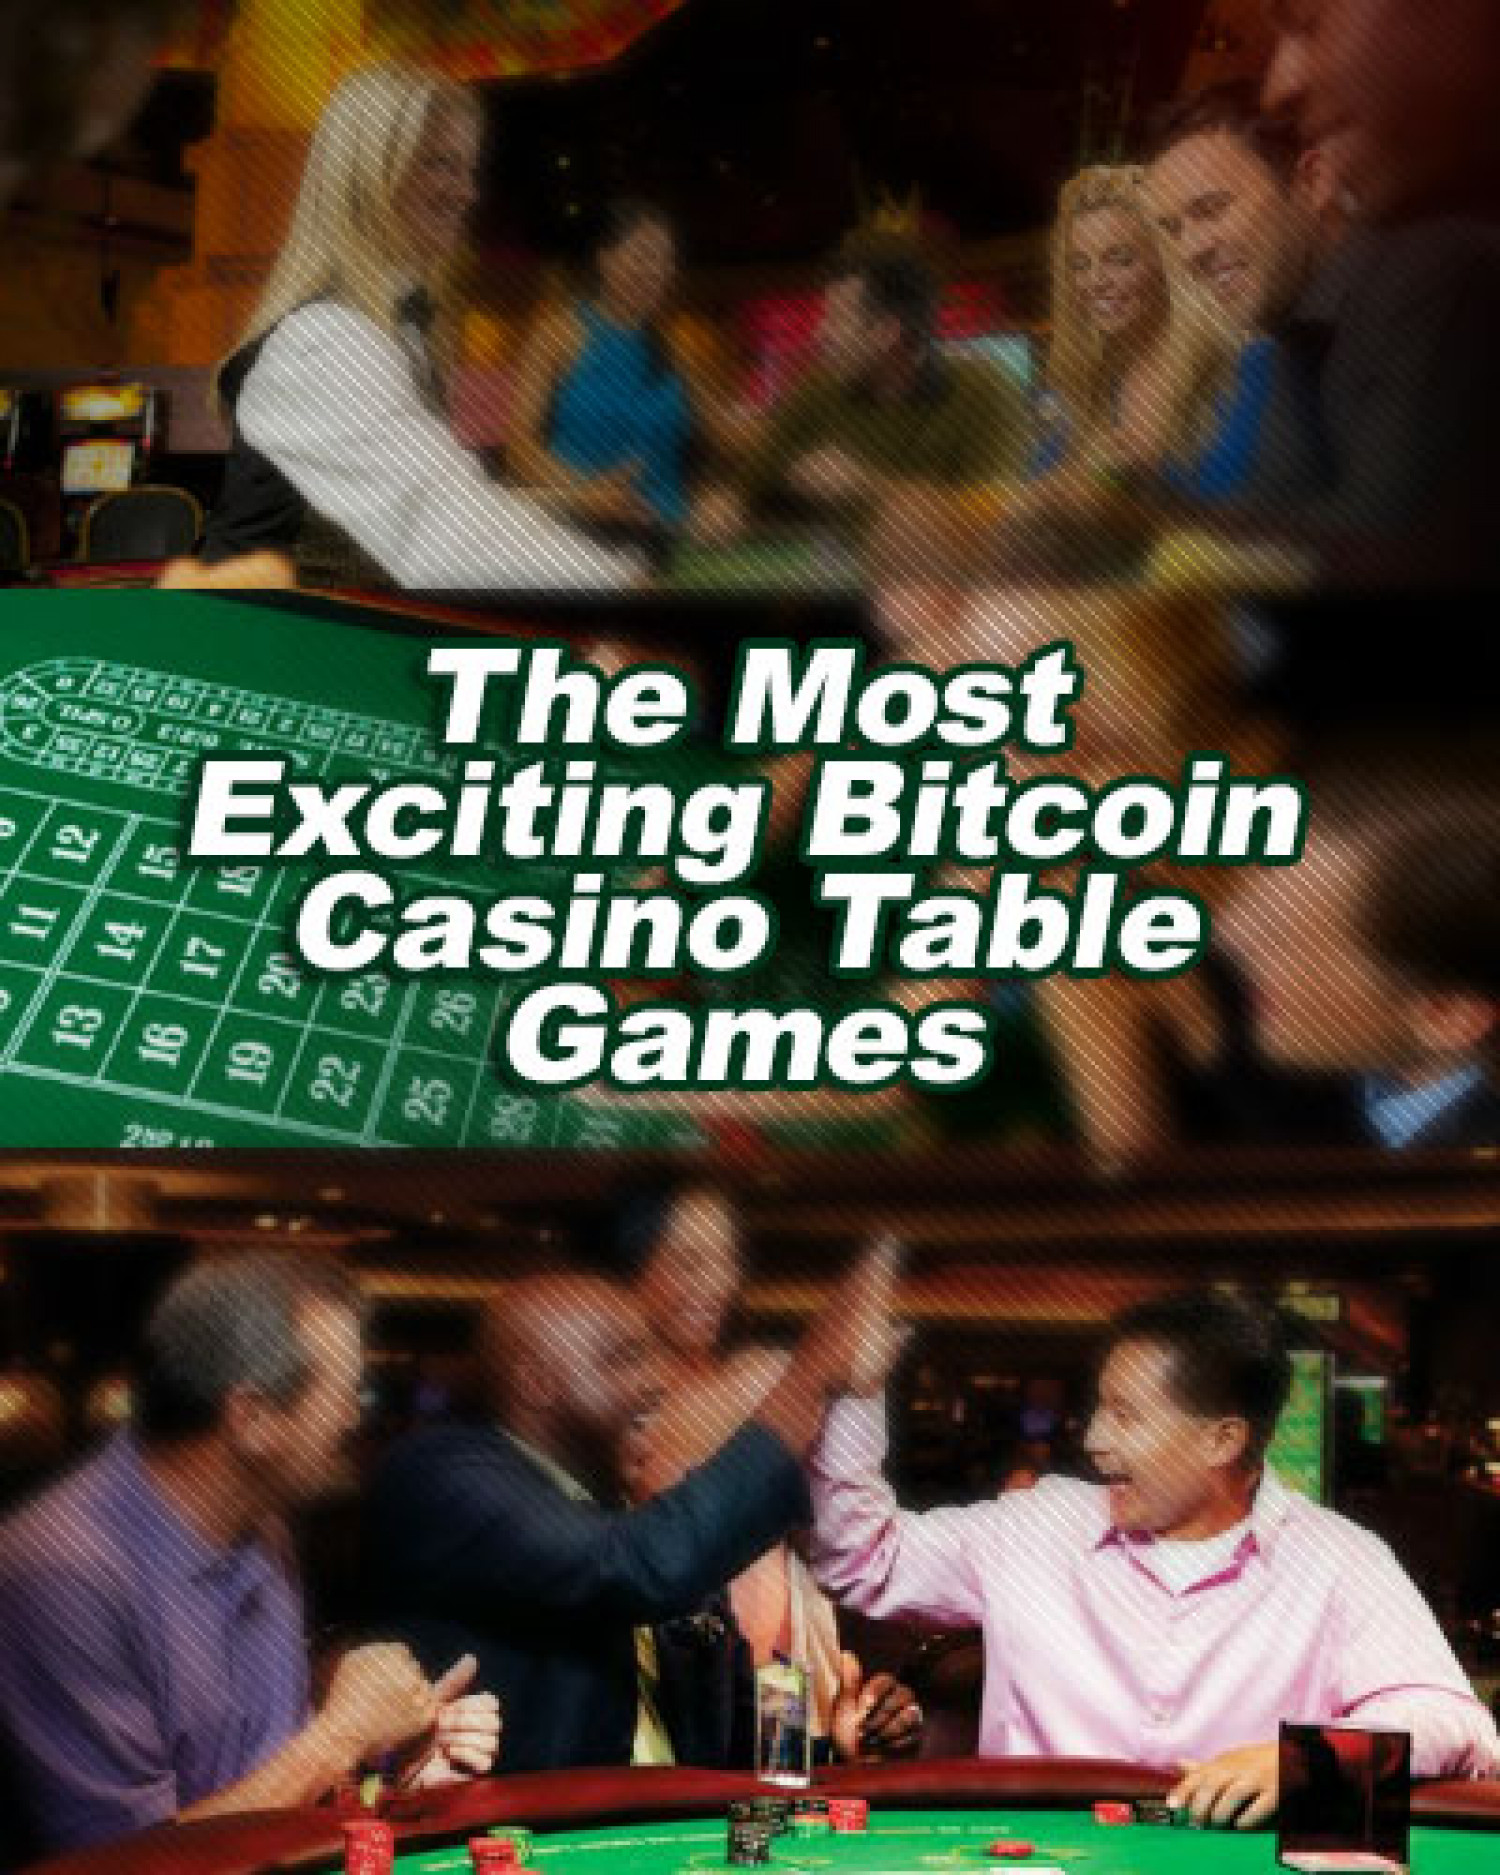 The Most Exciting Bitcoin Casino Table Games Infographic